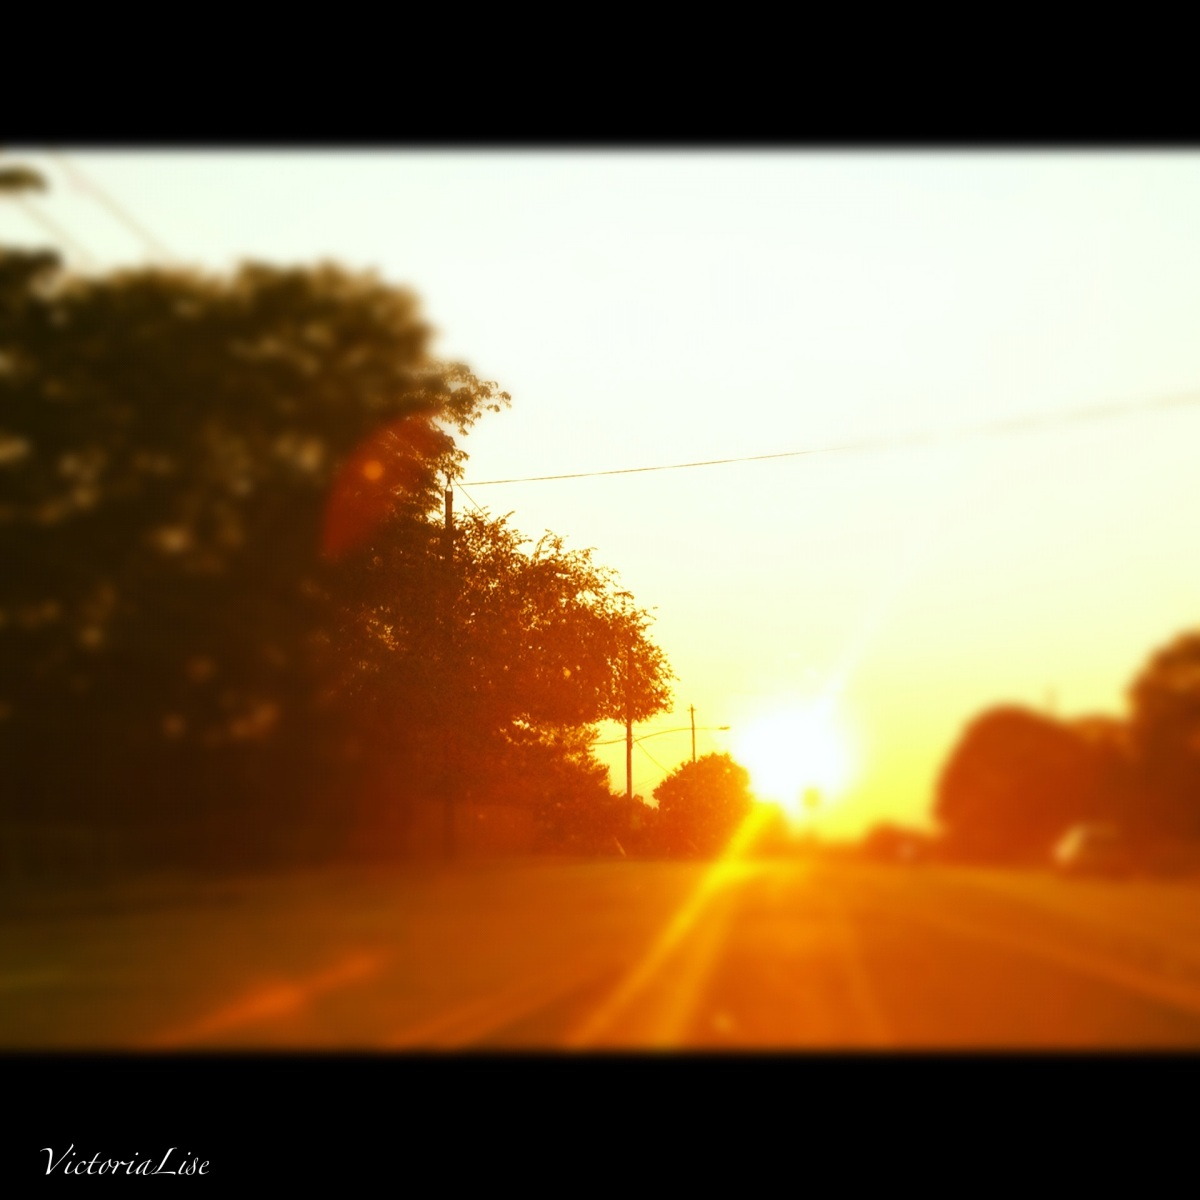 Route 4 sunset, Delaware. Victoria Lise 2012